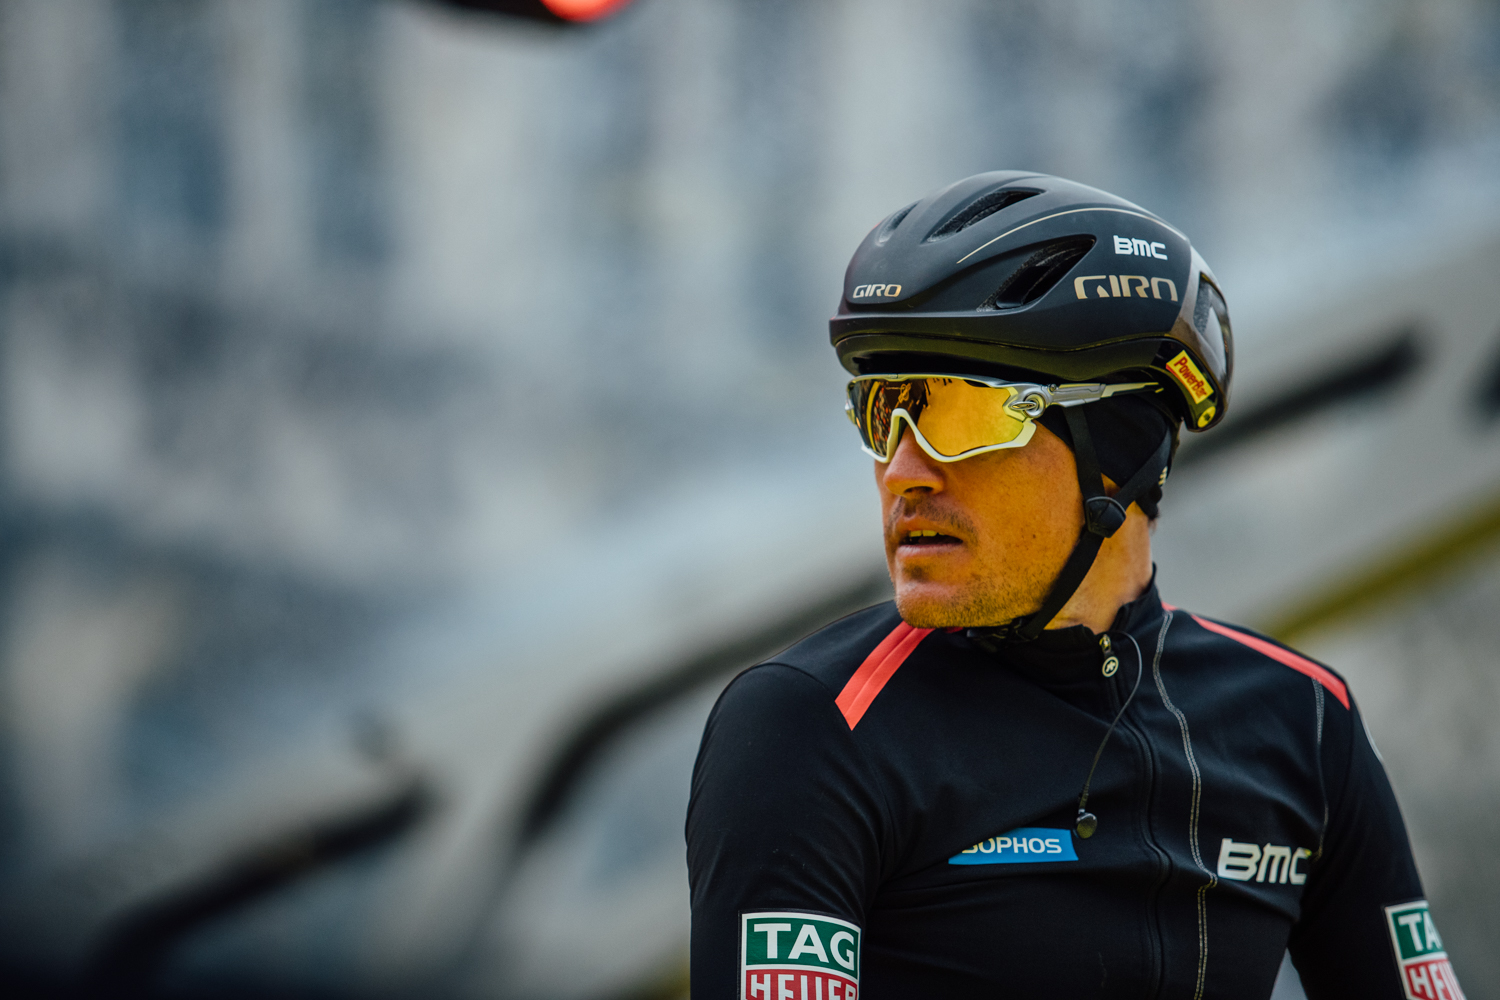 Greg van Avermat